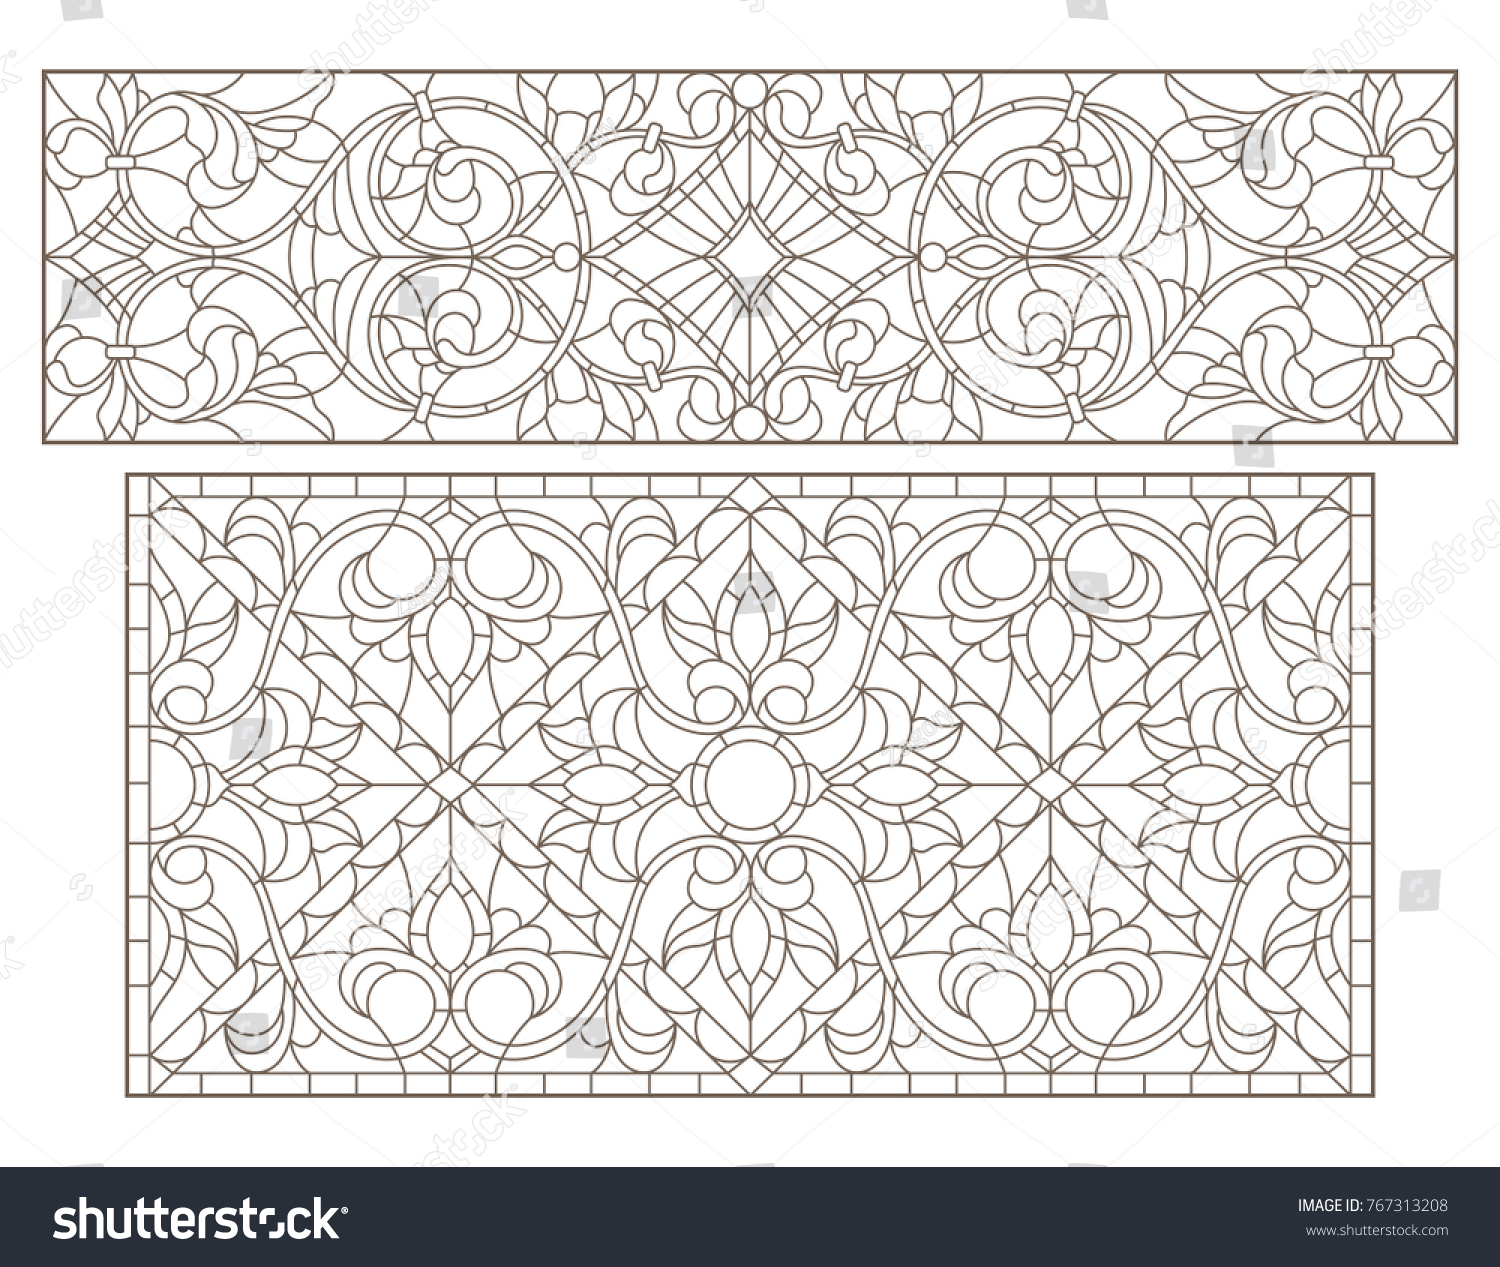 Stock Vector Set Contour Illustrations Of Stained Glass